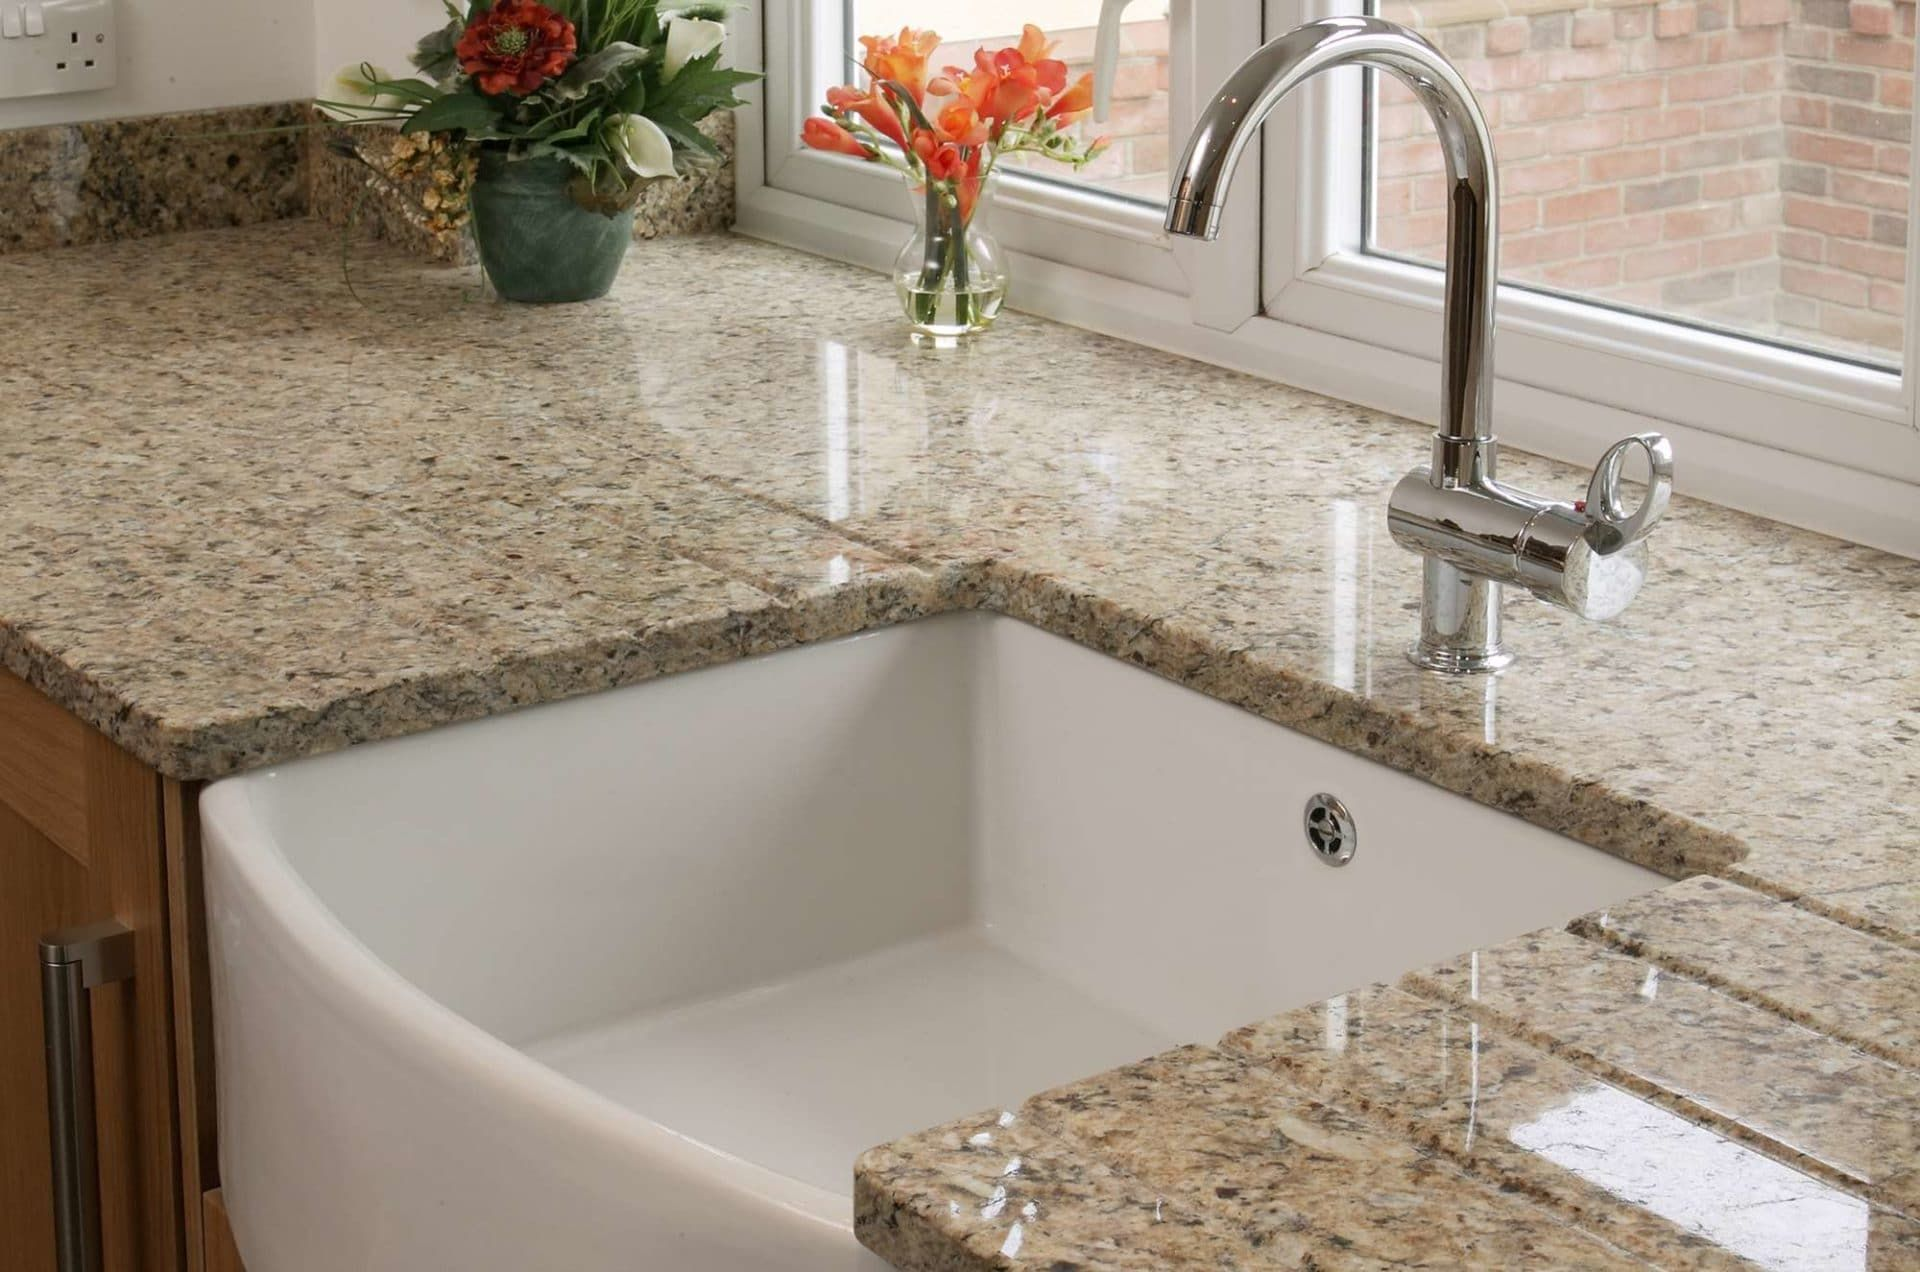 Mortise sink in the windowsill marble kitchen top